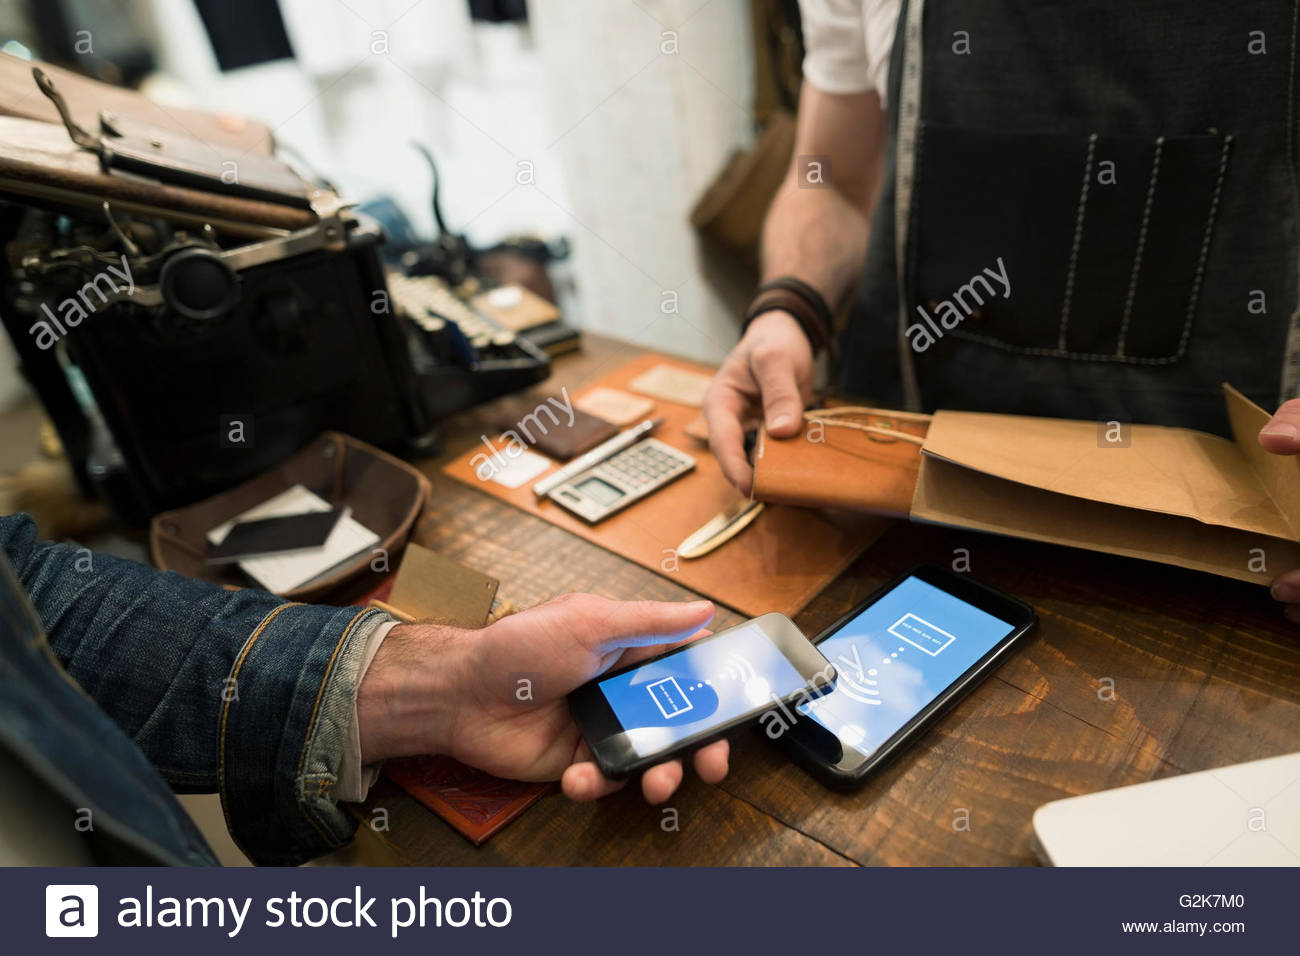 Customer using contactless payment in leather shop - Stock Image